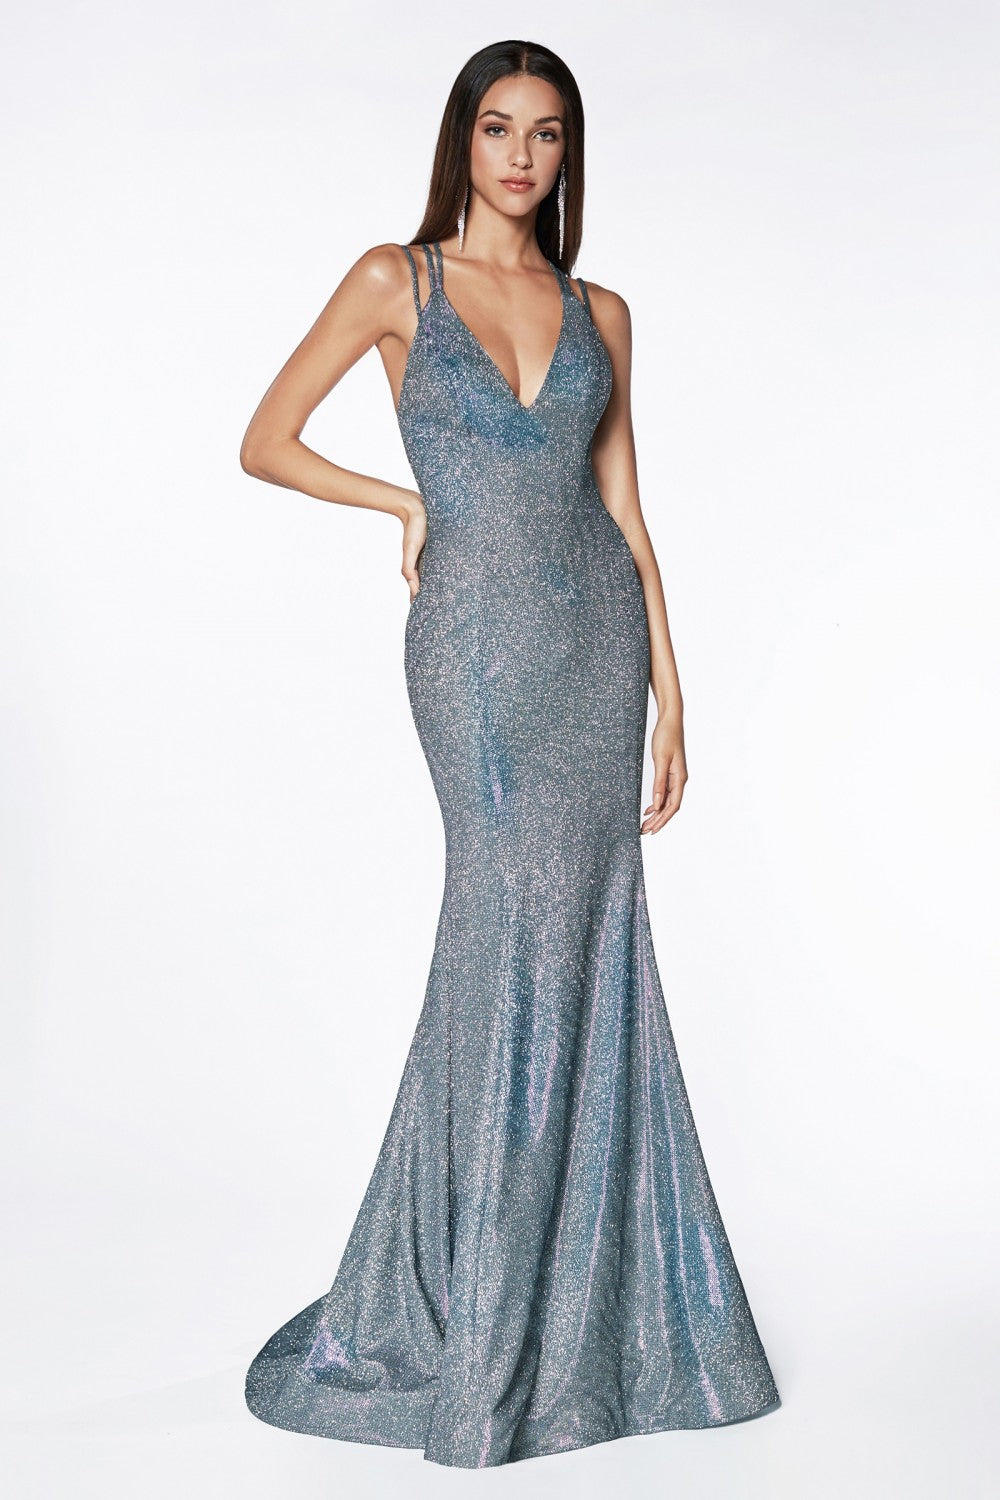 Fitted Gown With Criss Cross Open Back And Metallic Glitter Fabric